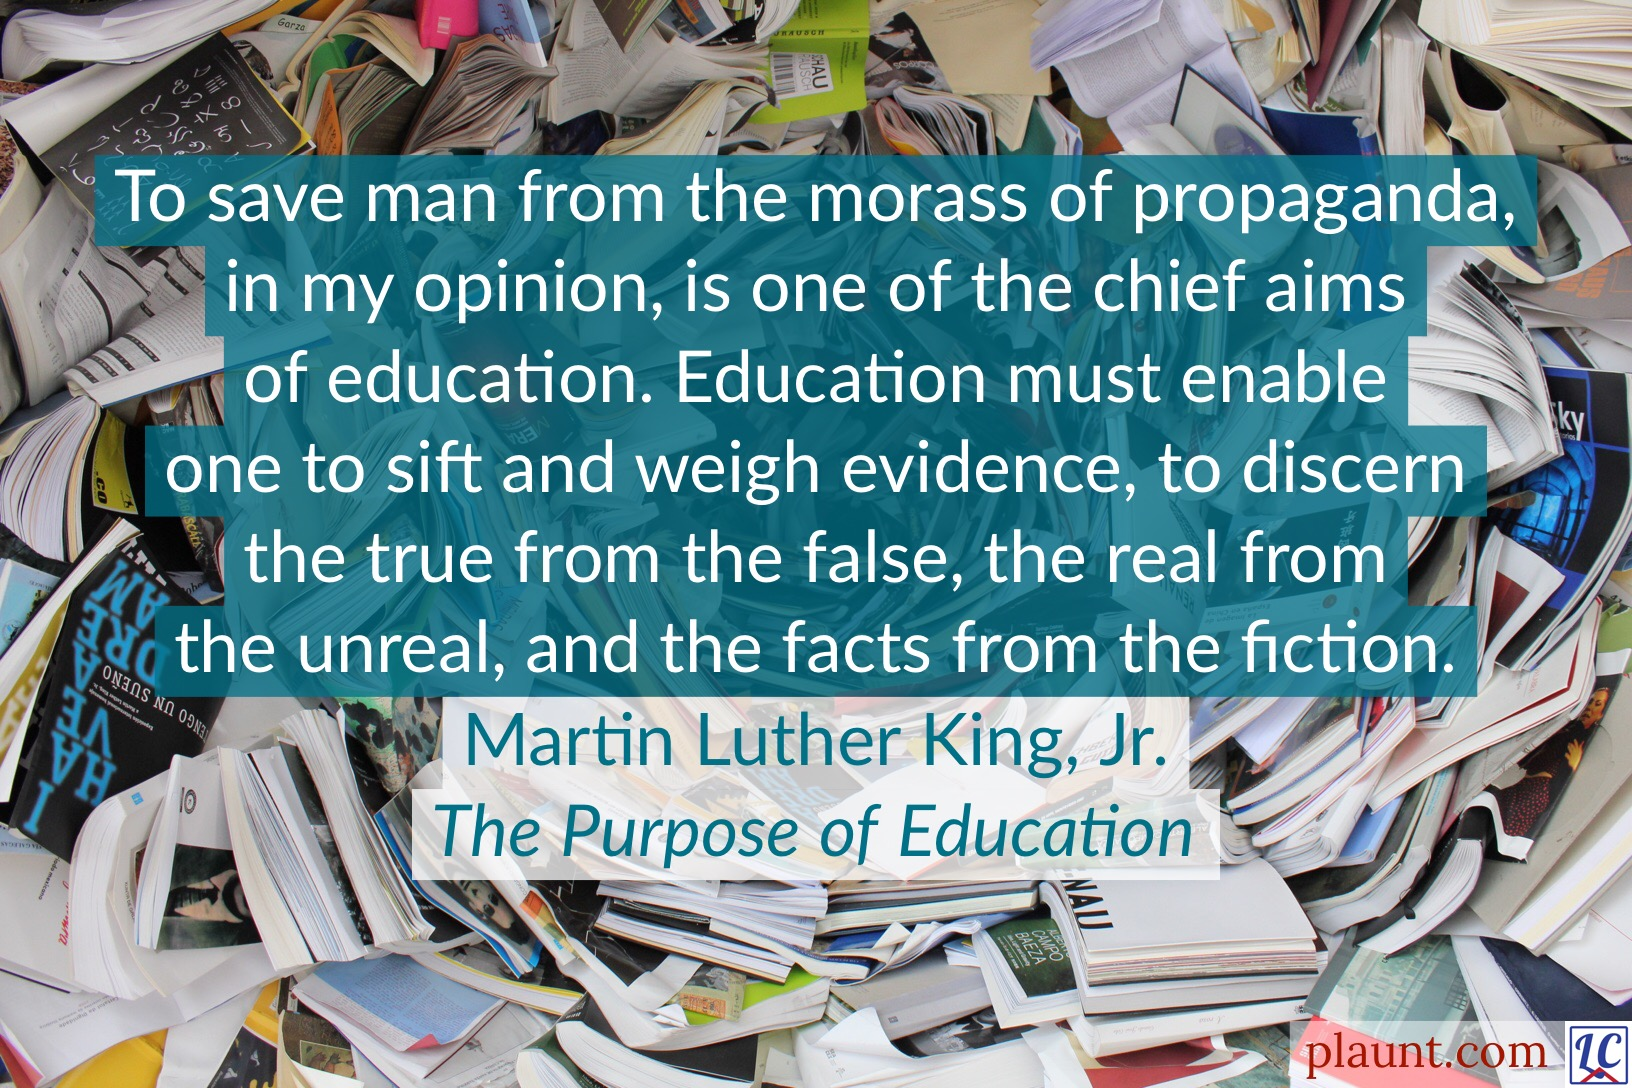 To save man from the morass of propaganda, in my opinion, is one of the chief aims of education. Education must enable one to sift and weigh evidence, to discern the true from the false, the real from the unreal, and the facts from the fiction. ~Martin Luther King, Jr., The Purpose of Education